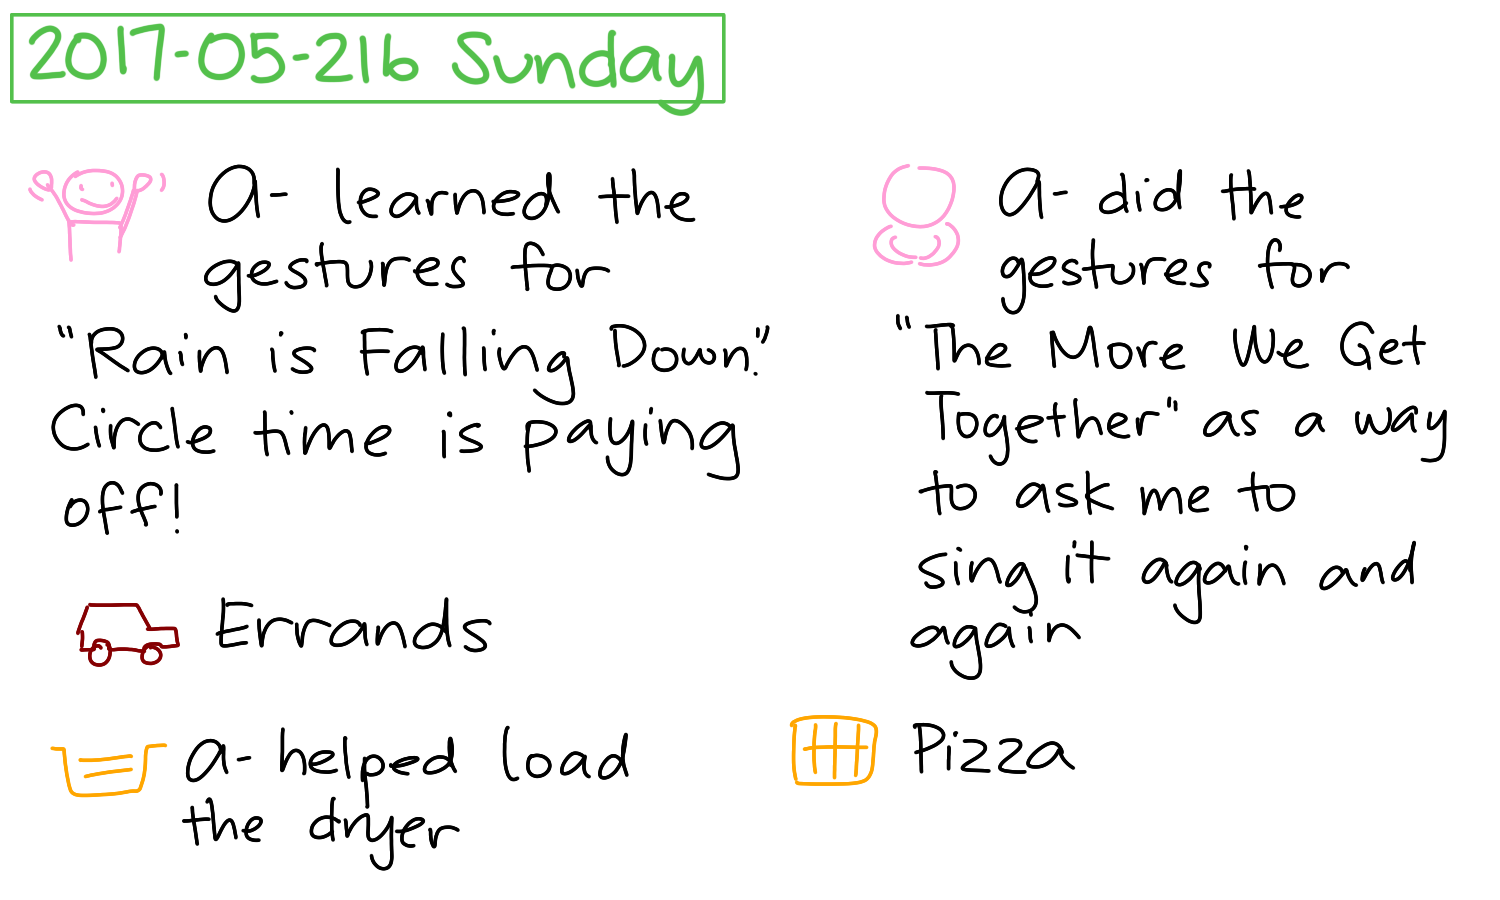 2017-05-21b Sunday #daily #journal.png